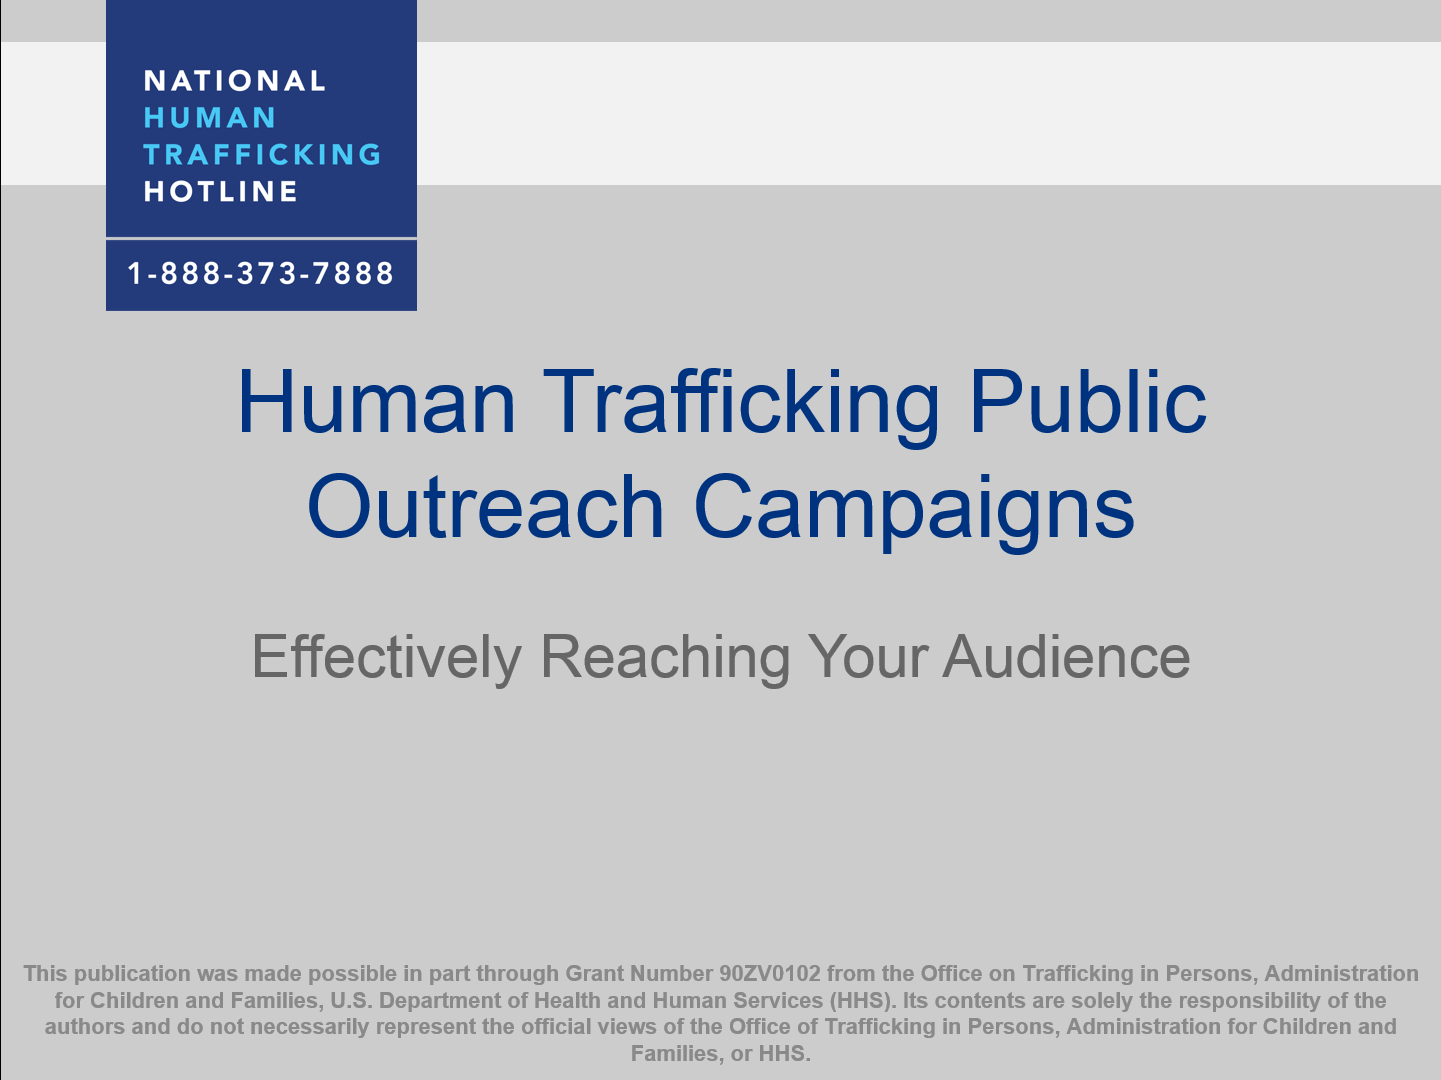 Public Outreach Campaigns